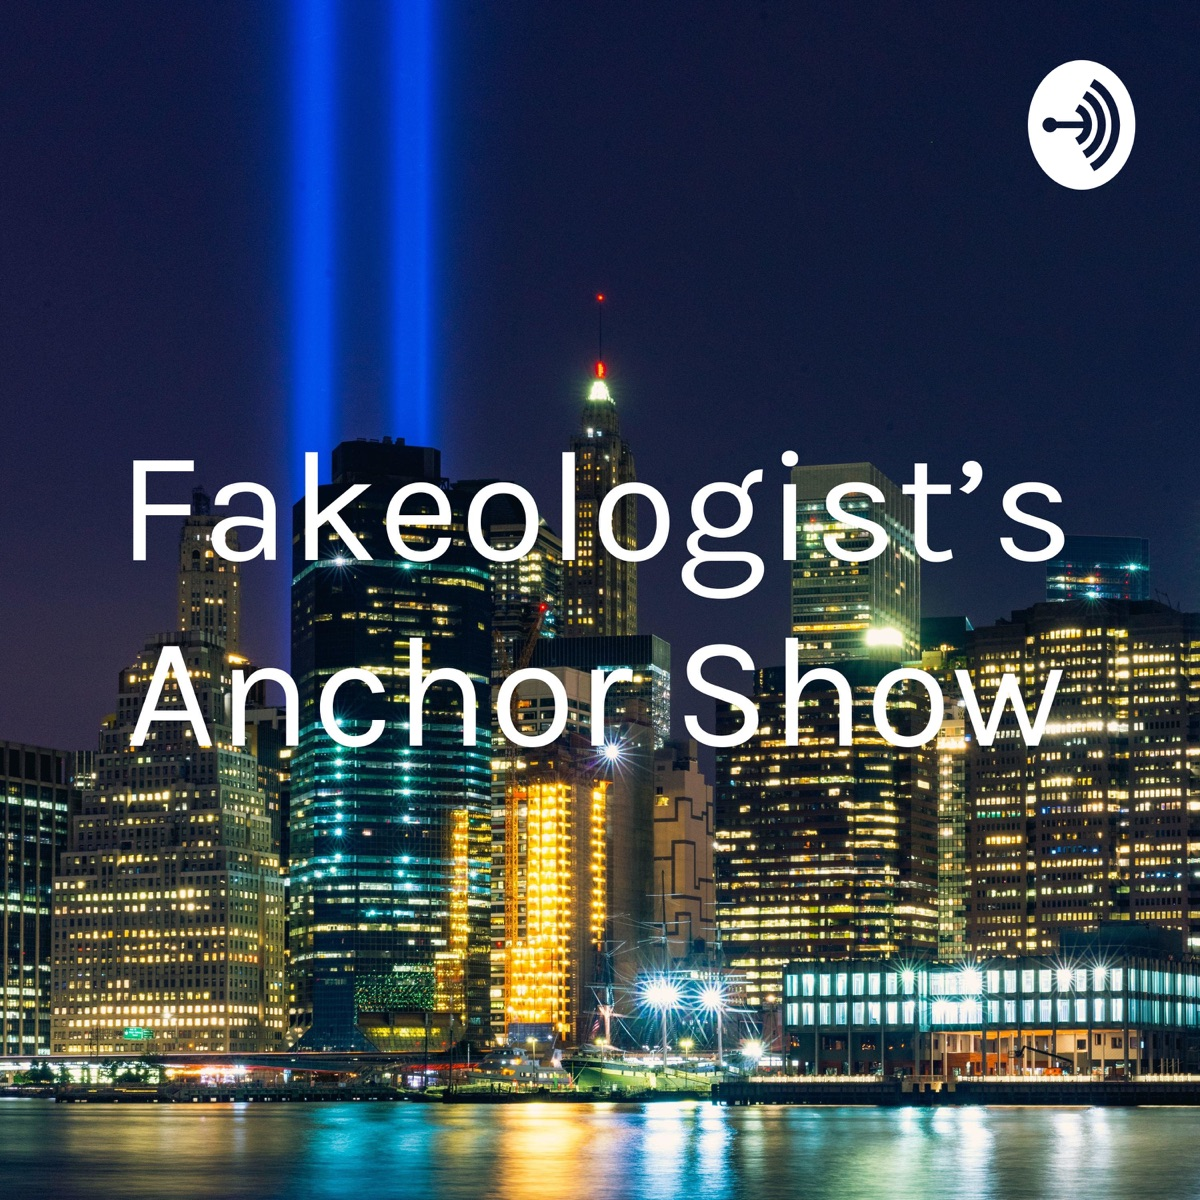 Fakeologist's Anchor Show